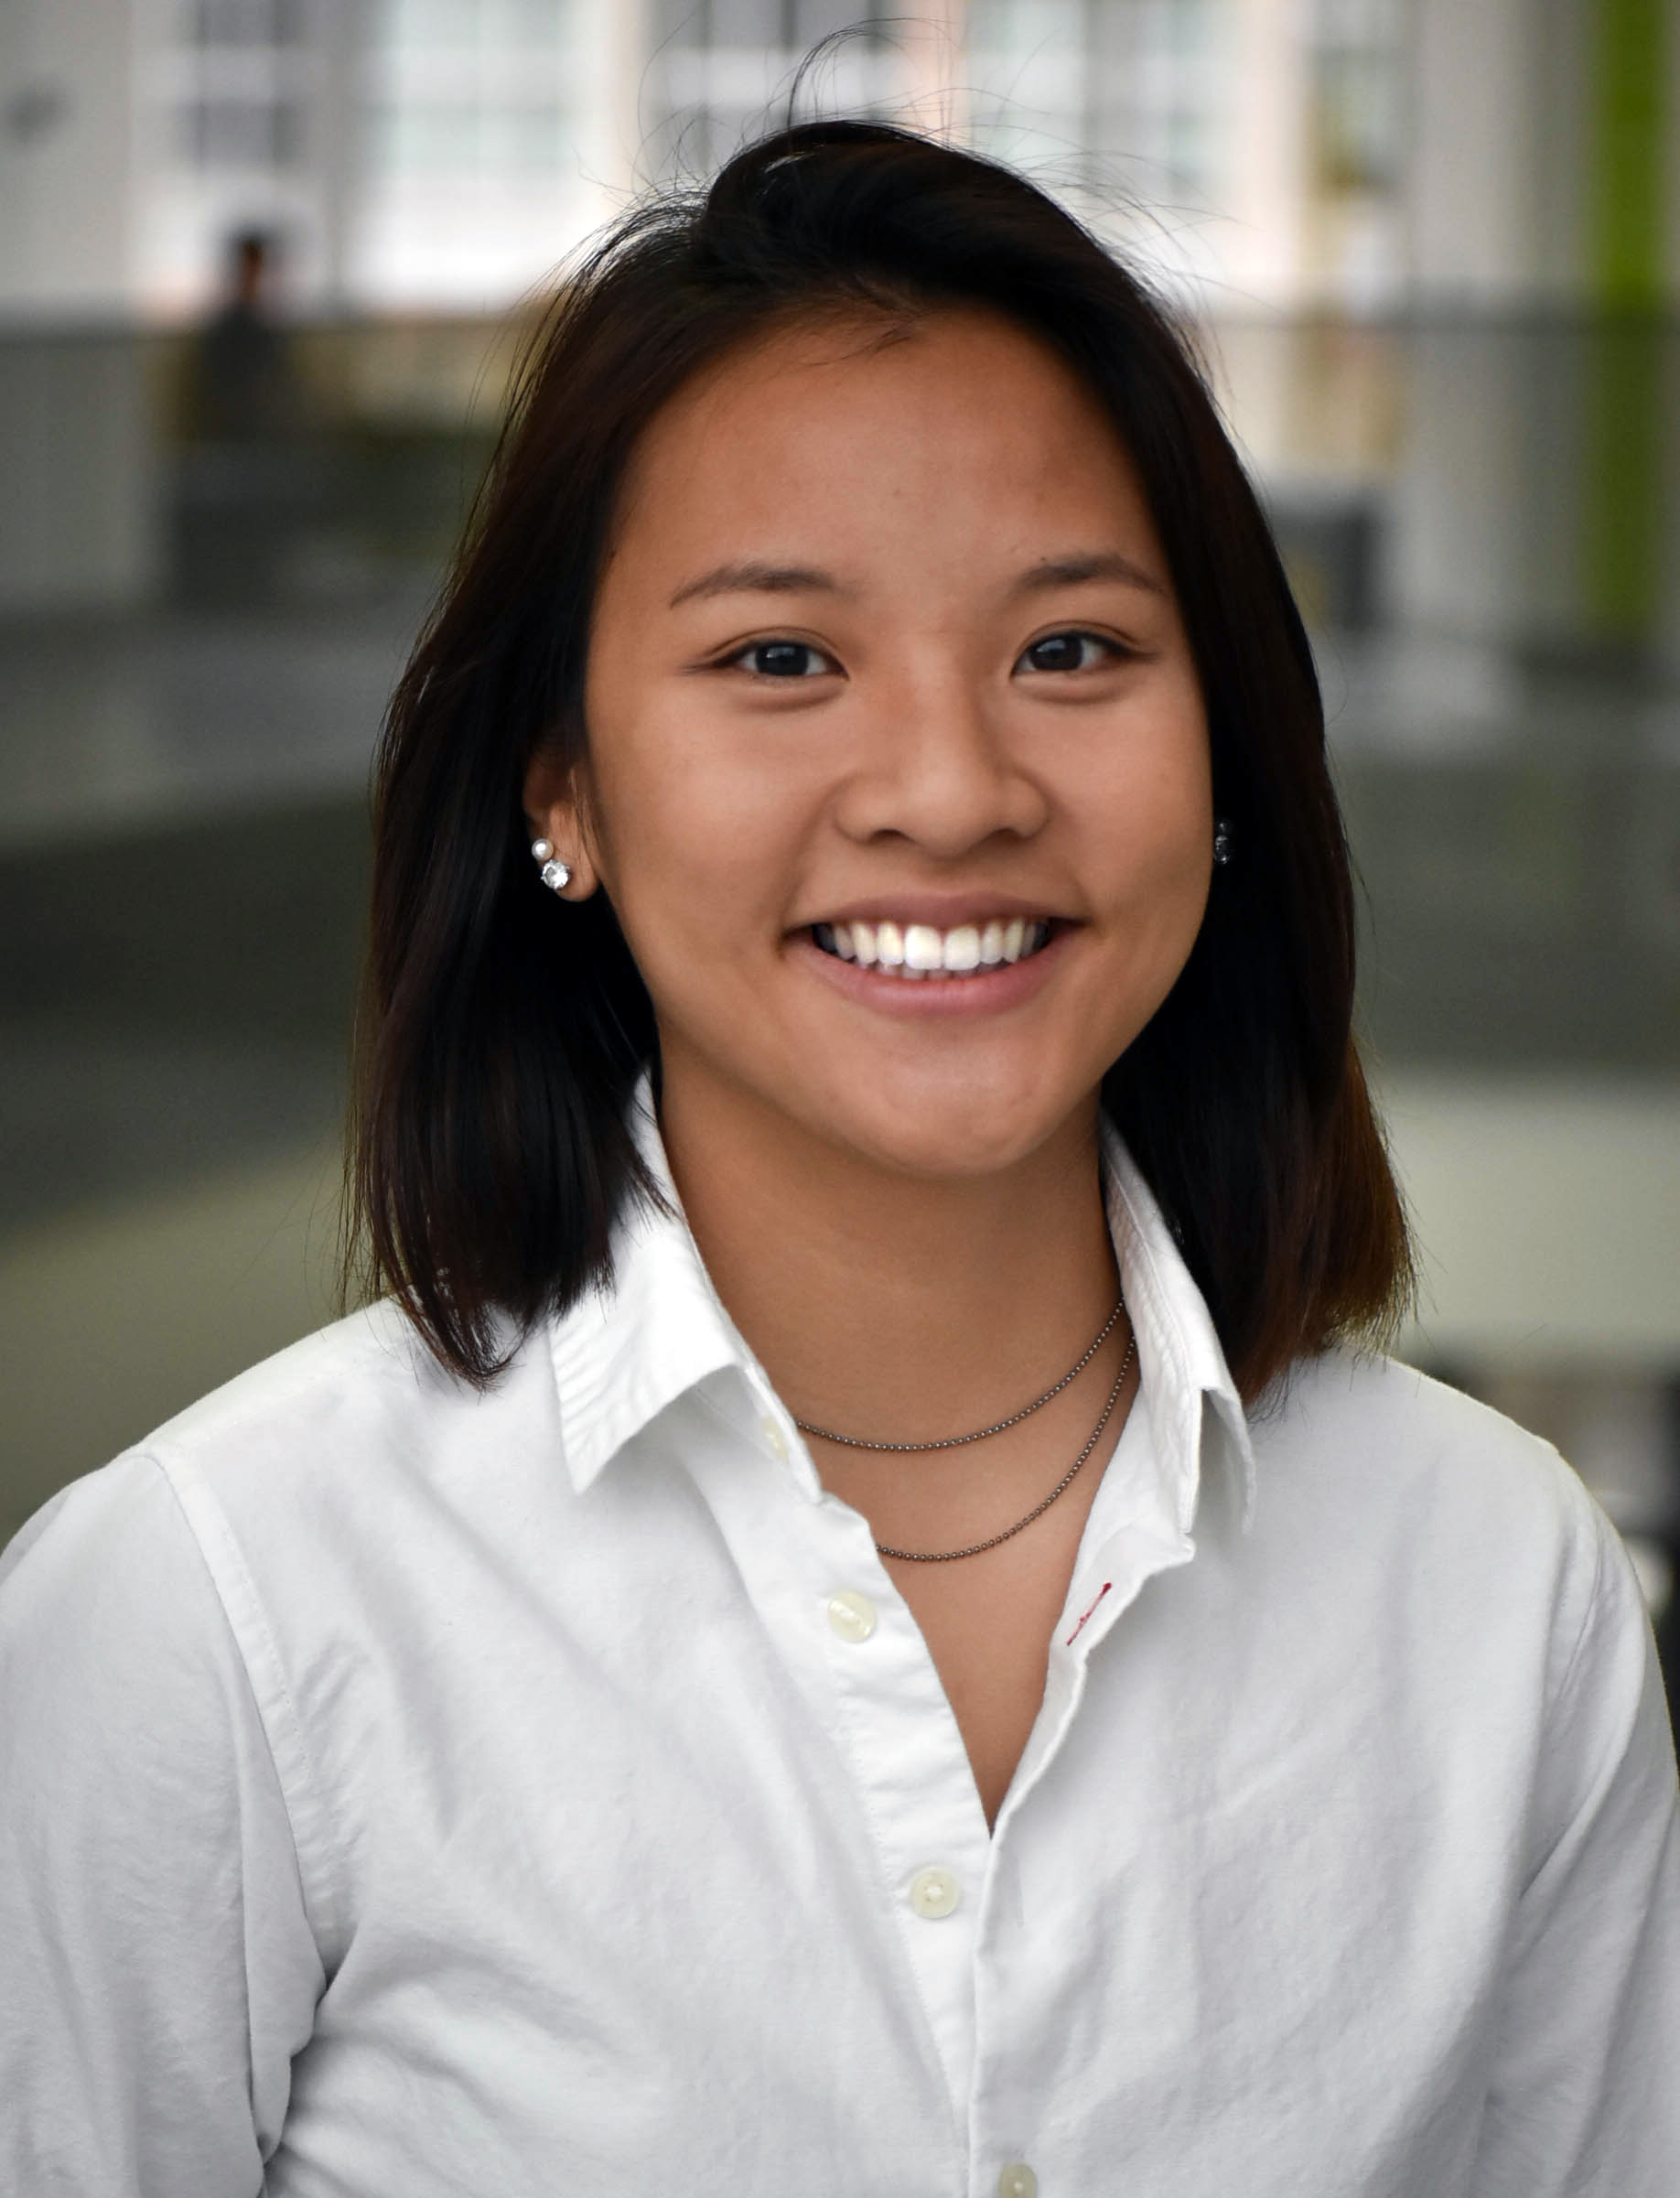 Valerie Le is a Undergraduate Media/Marketing Assistant for the Youth Policy Lab